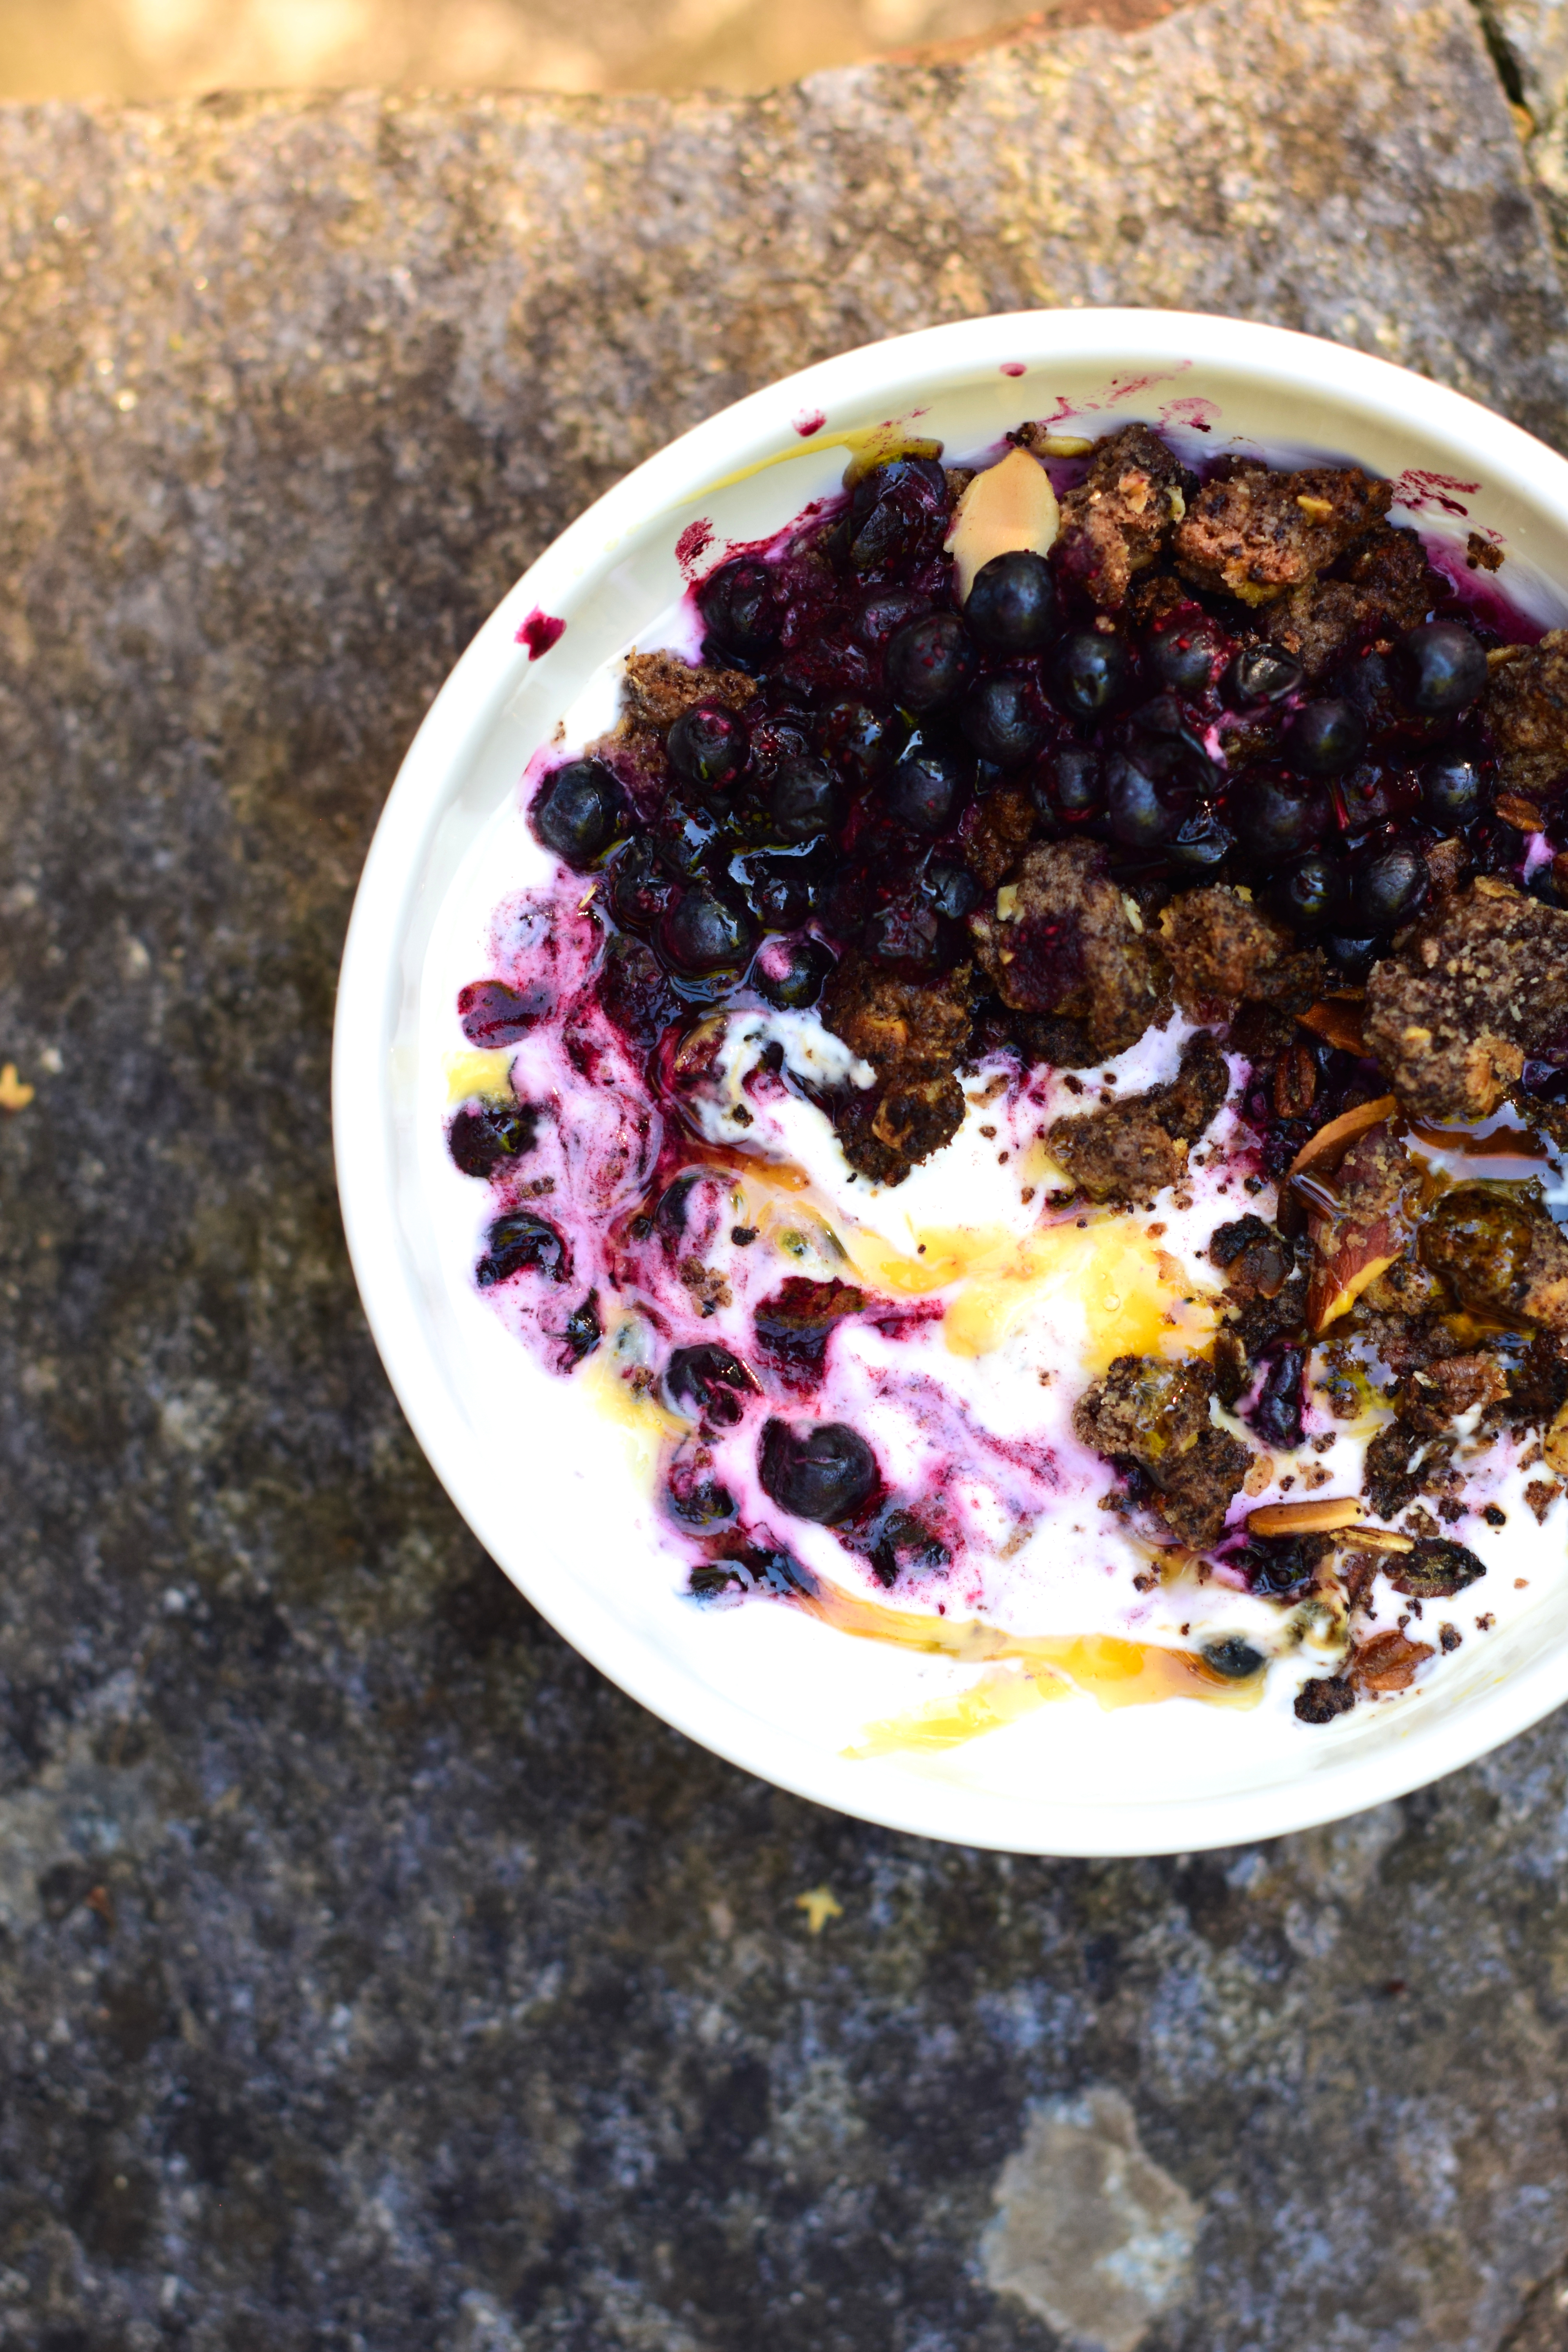 Wild blueberries breakfast bowl, cacao crumble